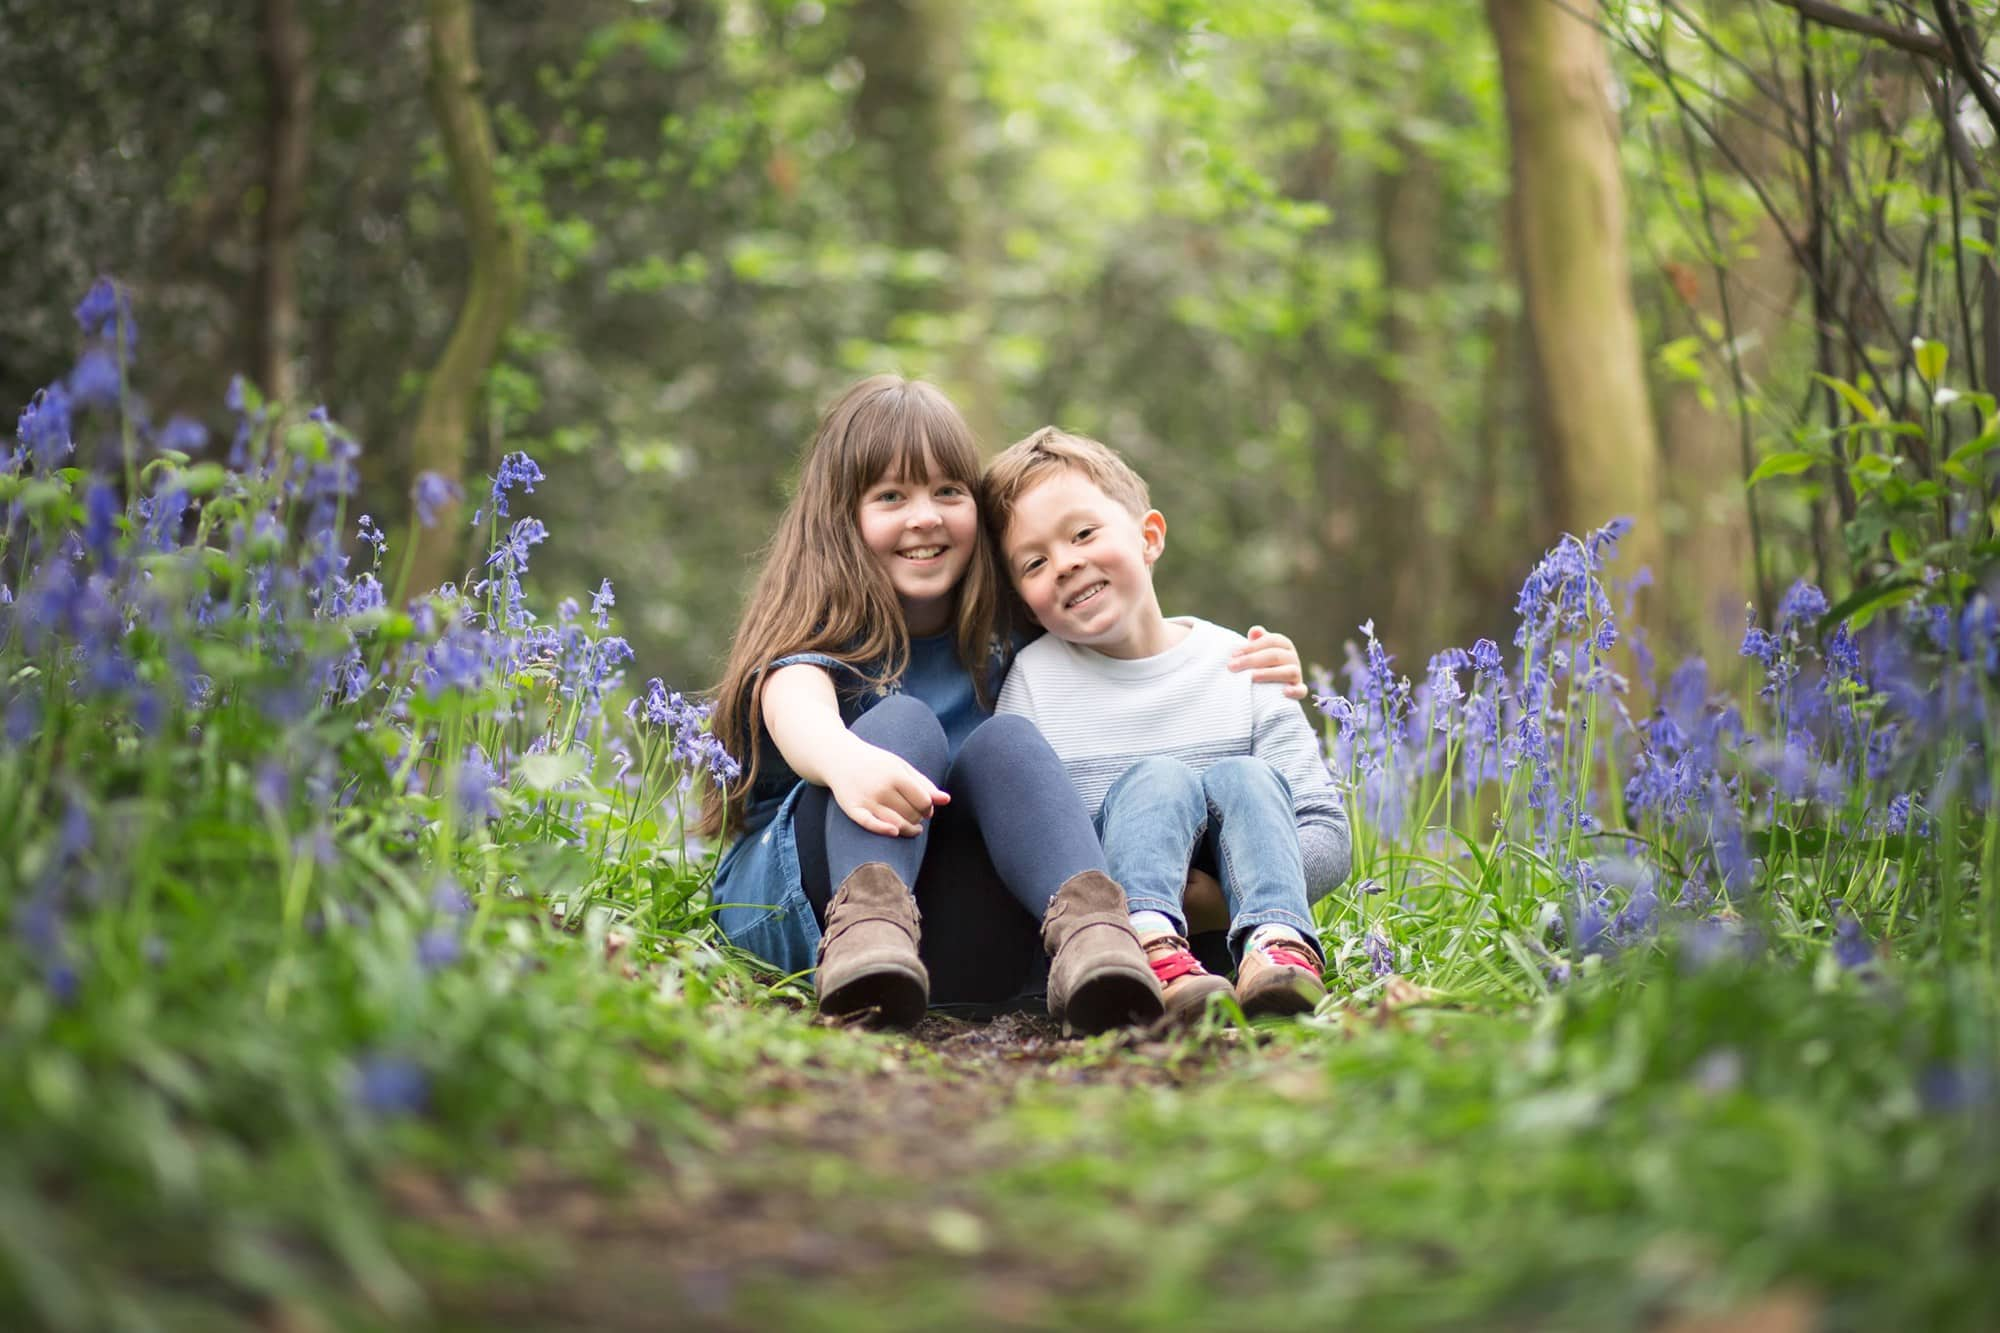 protecting the bluebells on a photoshoot